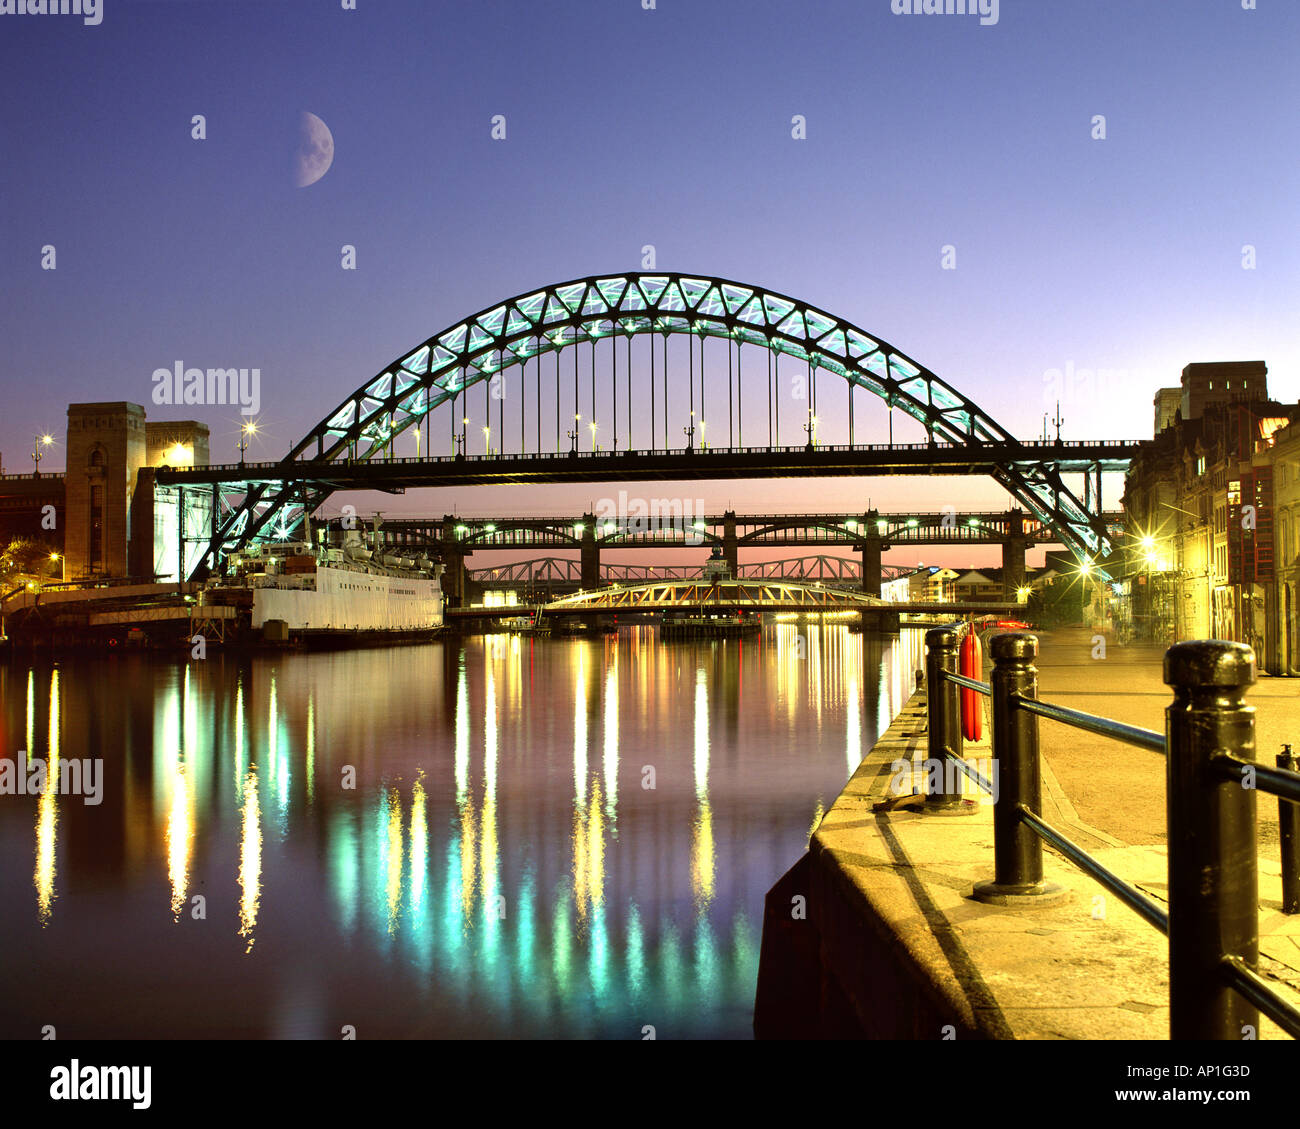 GB - NEWCASTLE: Tyne Bridge at night - Stock Image